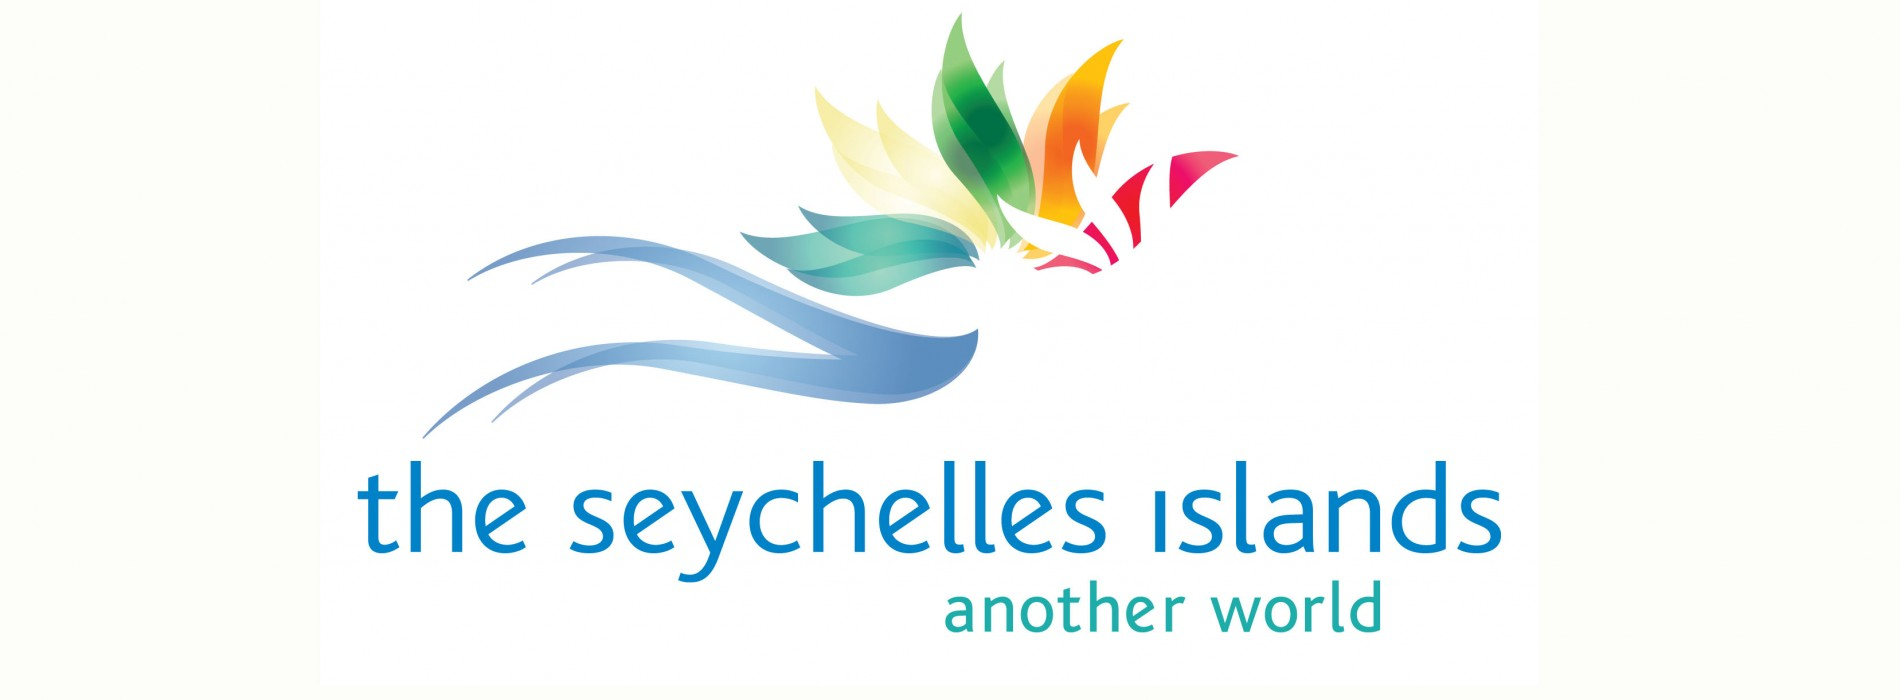 India continues to bring in numbers to Seychelles